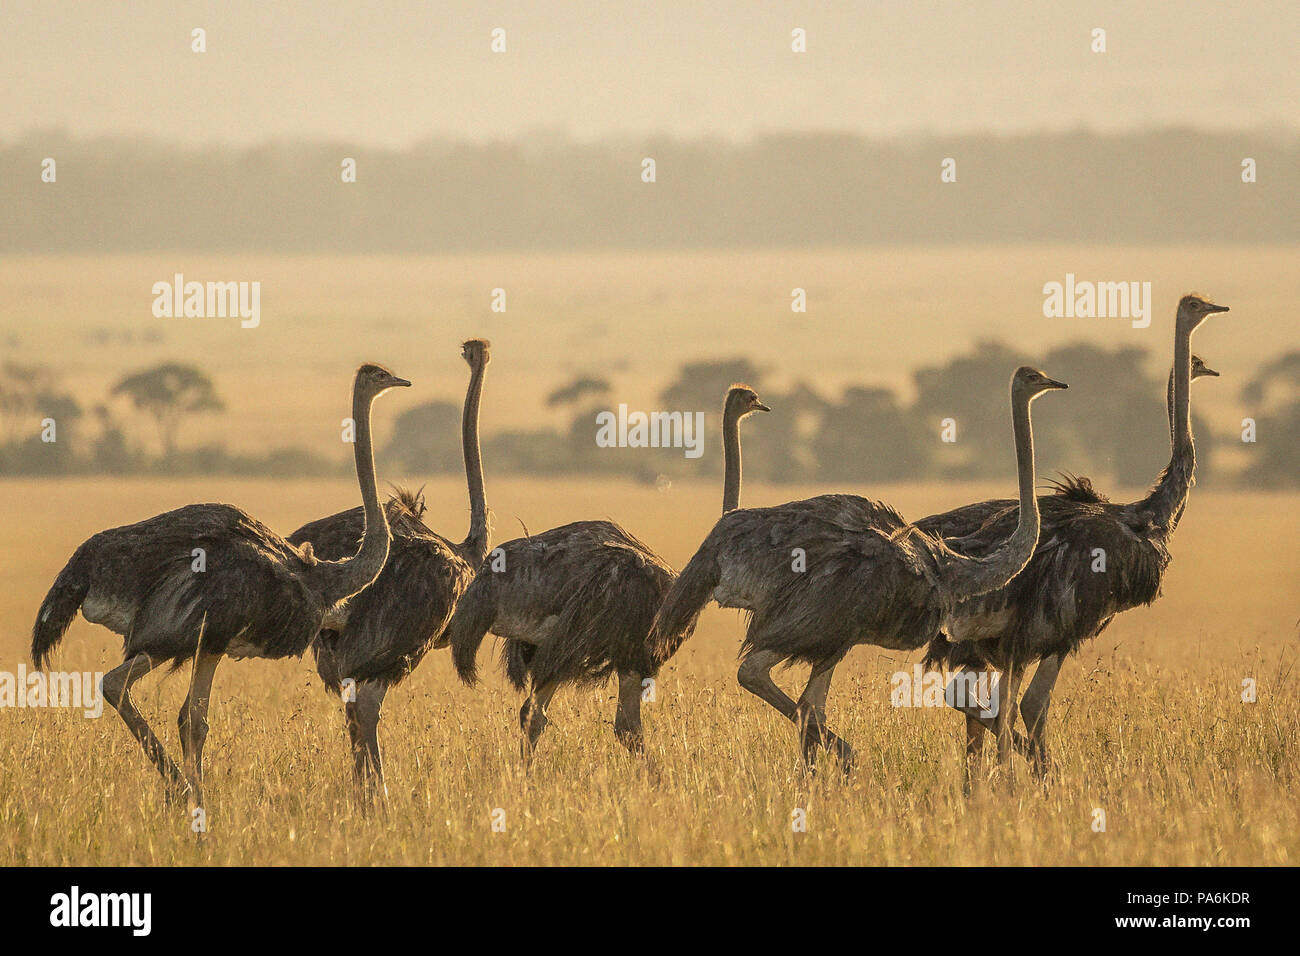 Group of 7 Common Ostriches (Struthio camelus)  walking in late afternoon in the Masai Mara in Kenya - Stock Image